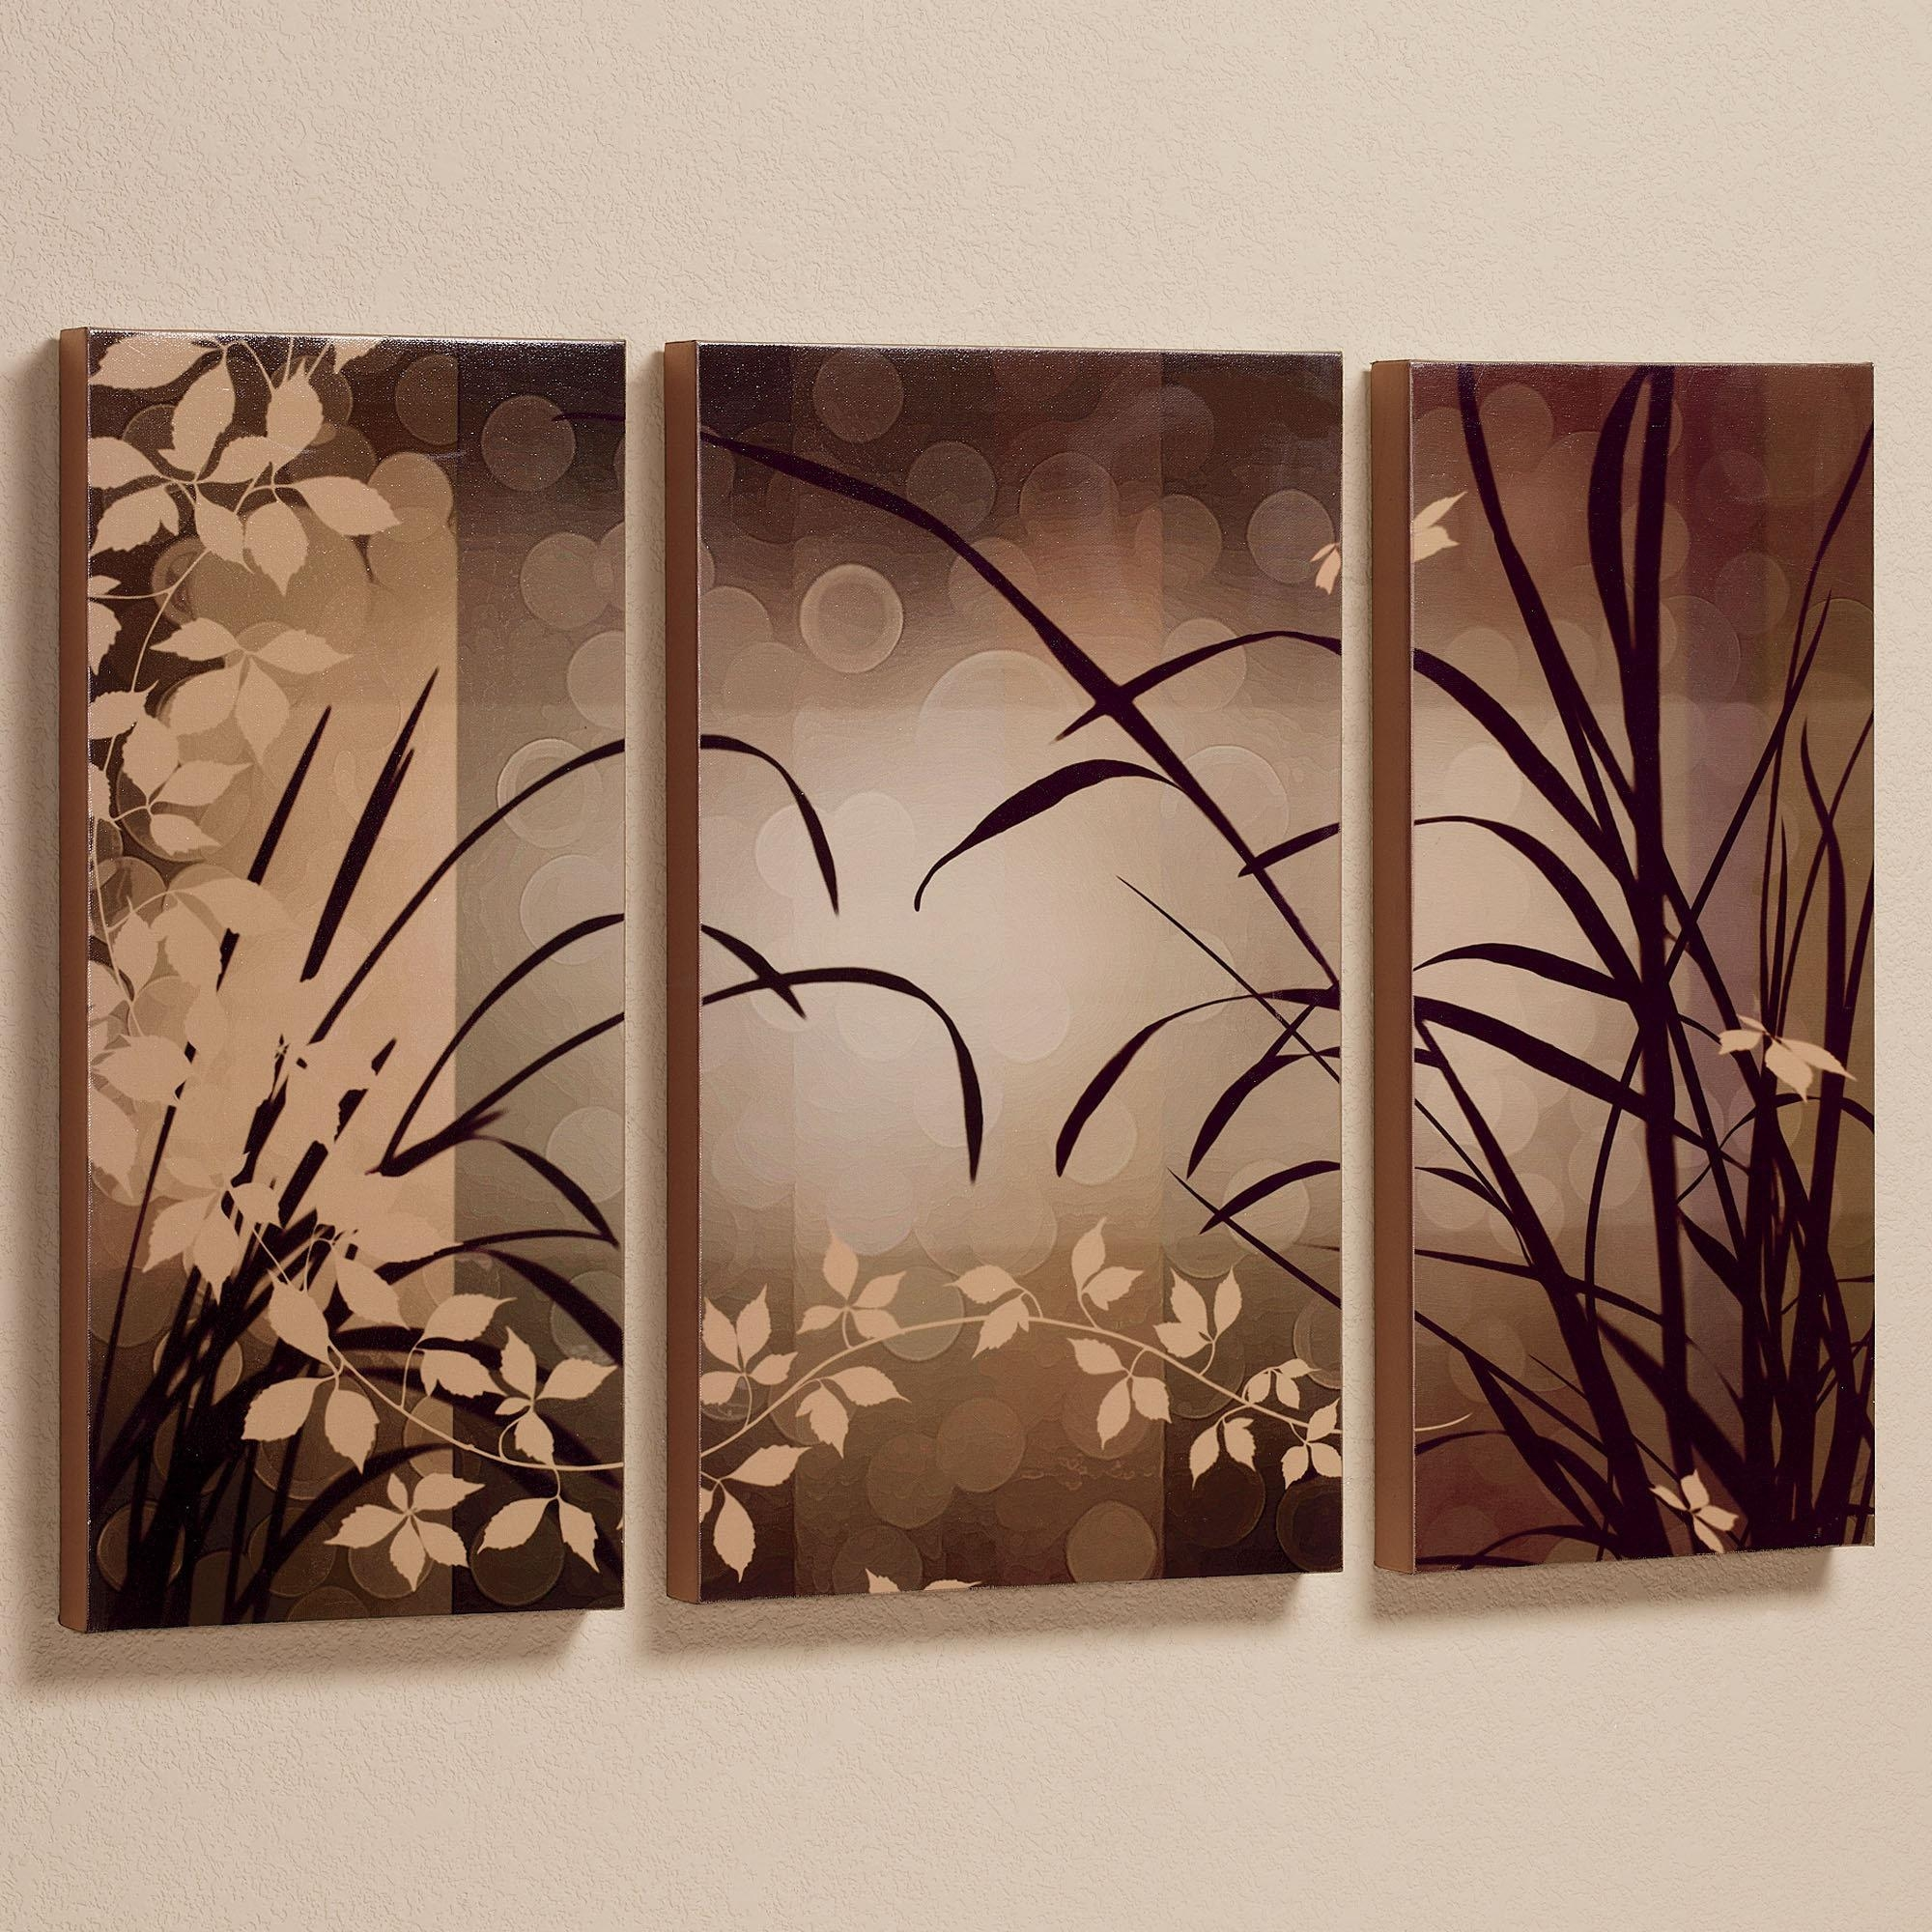 Wall Art Designs: Modern Designing Triptych Wall Art Canvas For Pertaining To Large Triptych Wall Art (View 4 of 20)